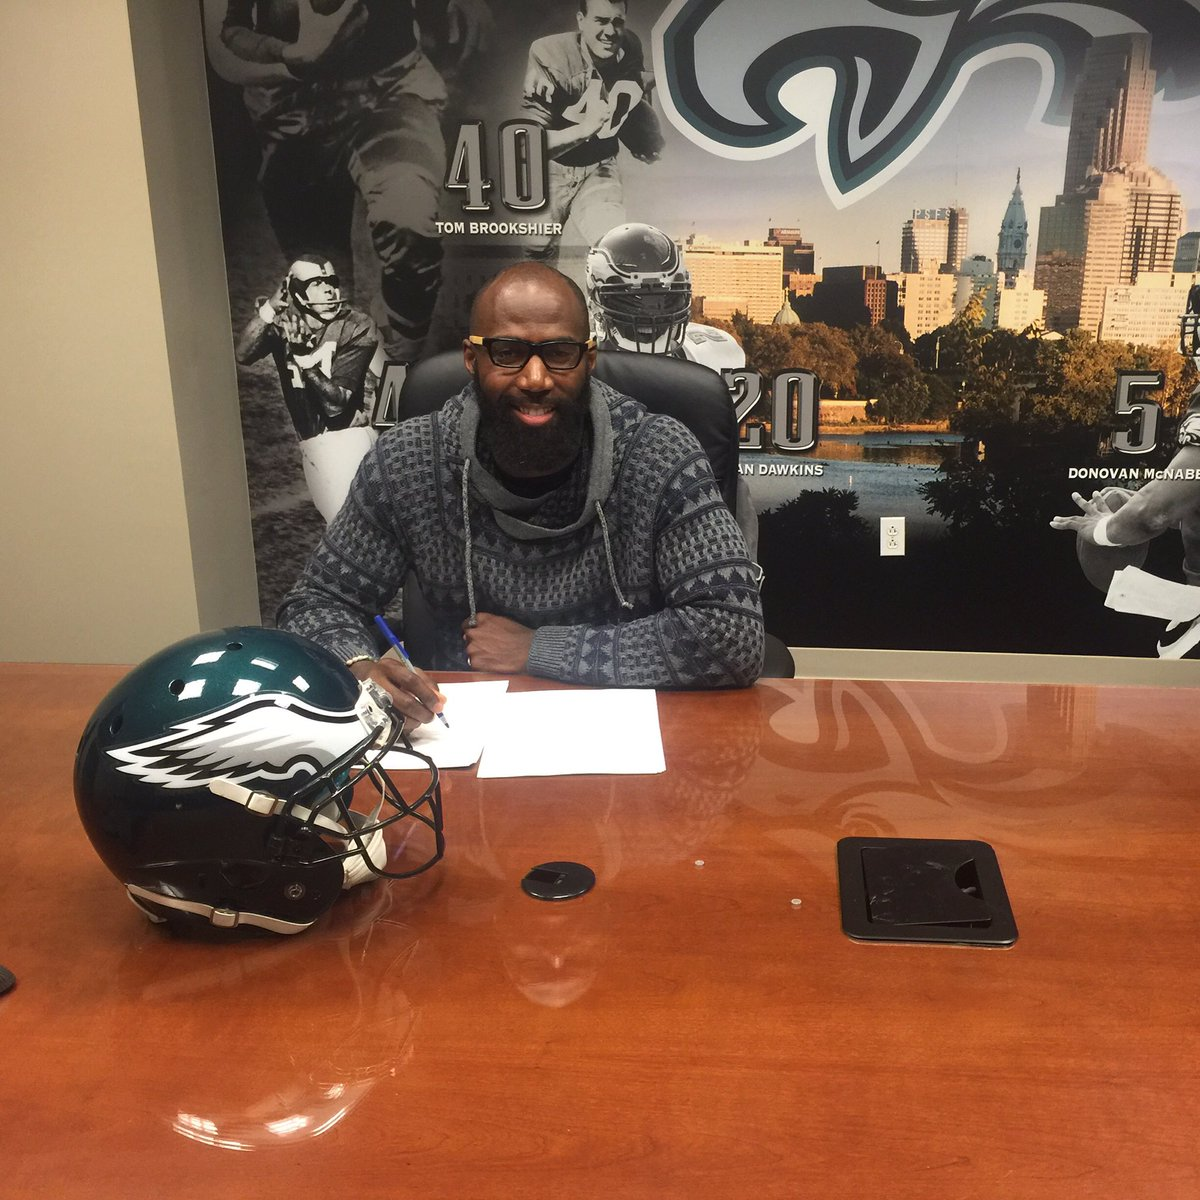 Signed, sealed, delivered... I'm yours Philly! #FlyEaglesFly https://t.co/xCX6wsqqKH